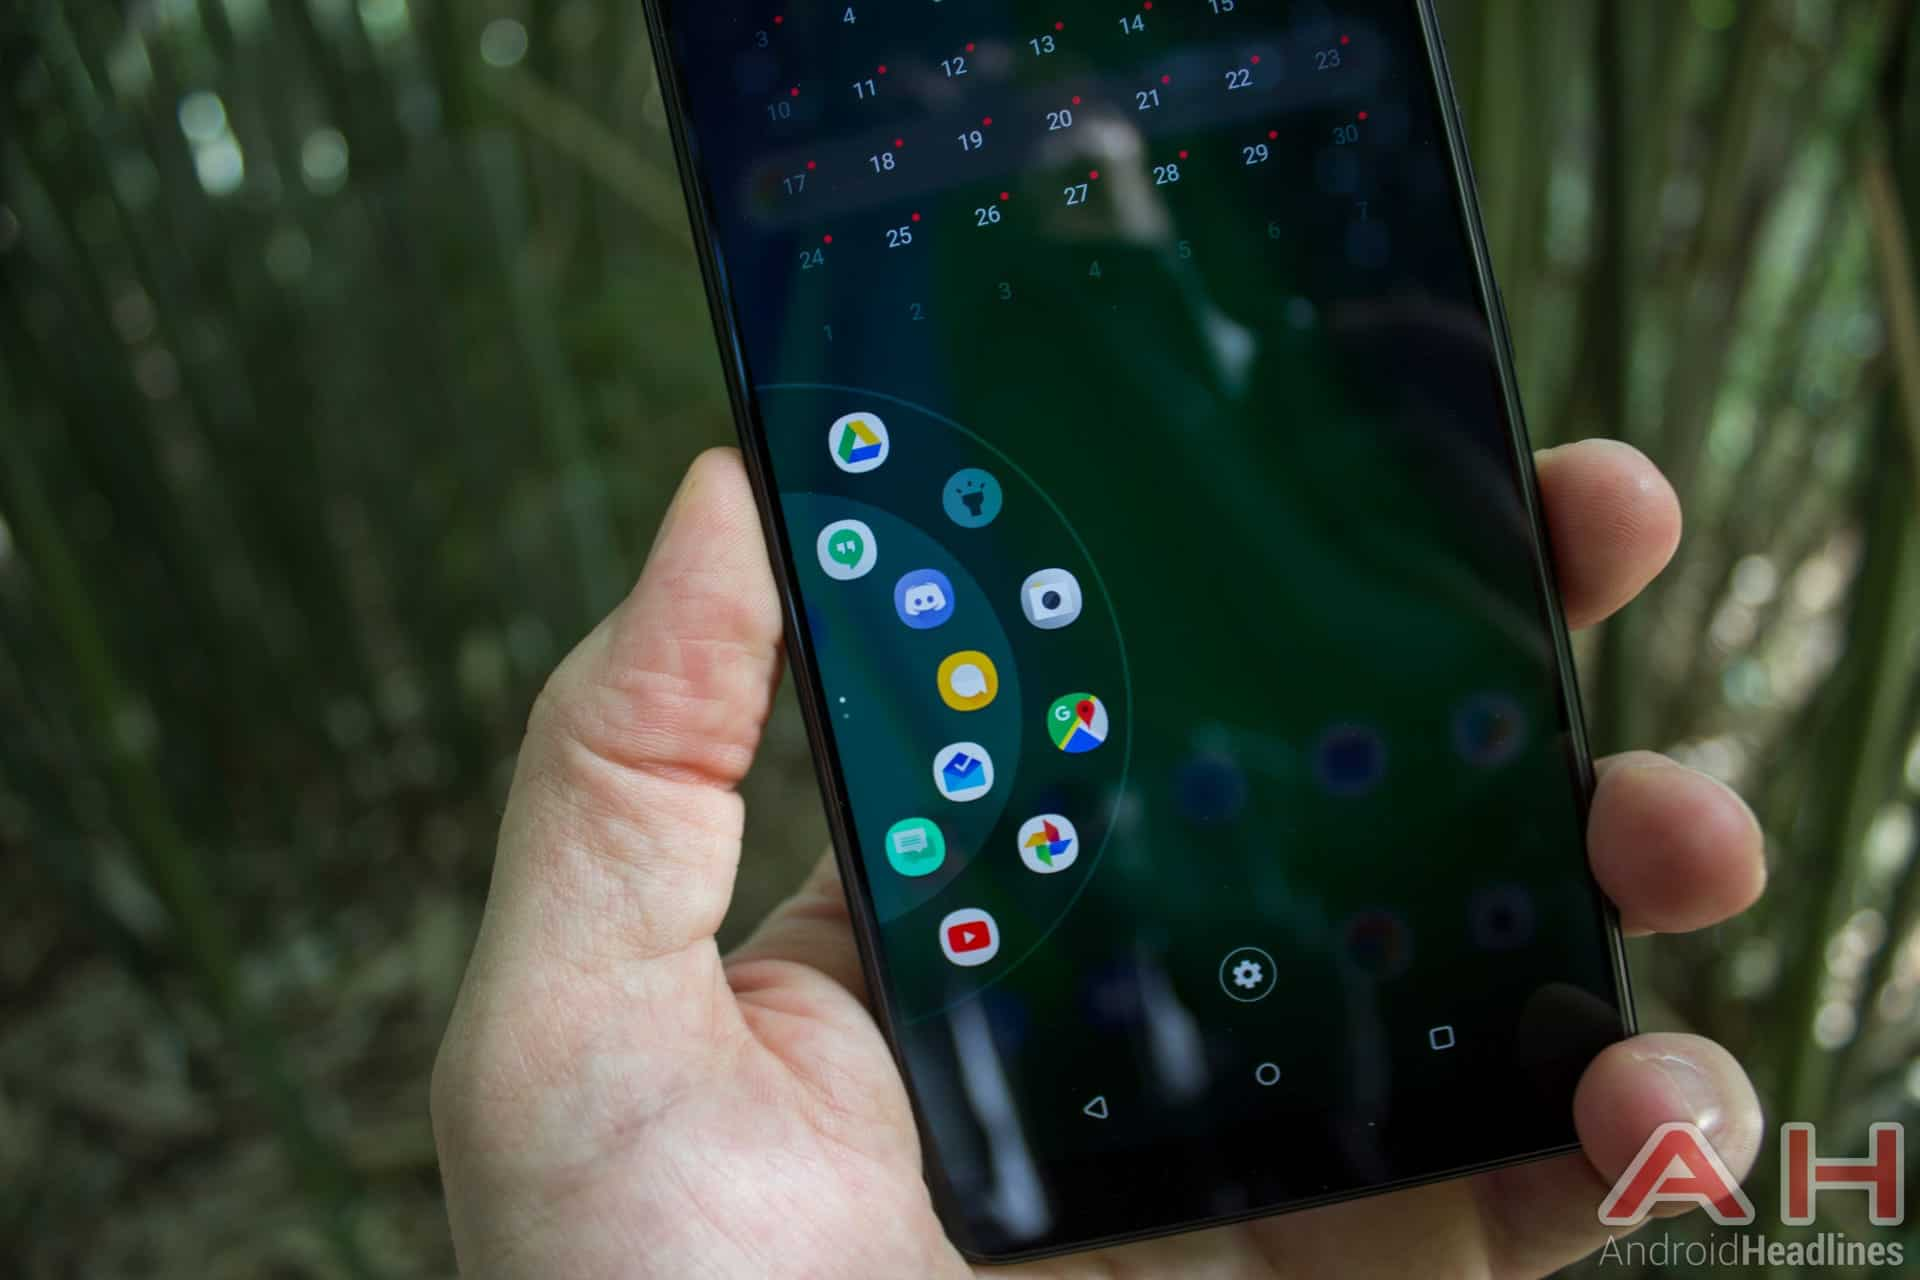 HTC U12 Plus AH NS 20 edge launcher